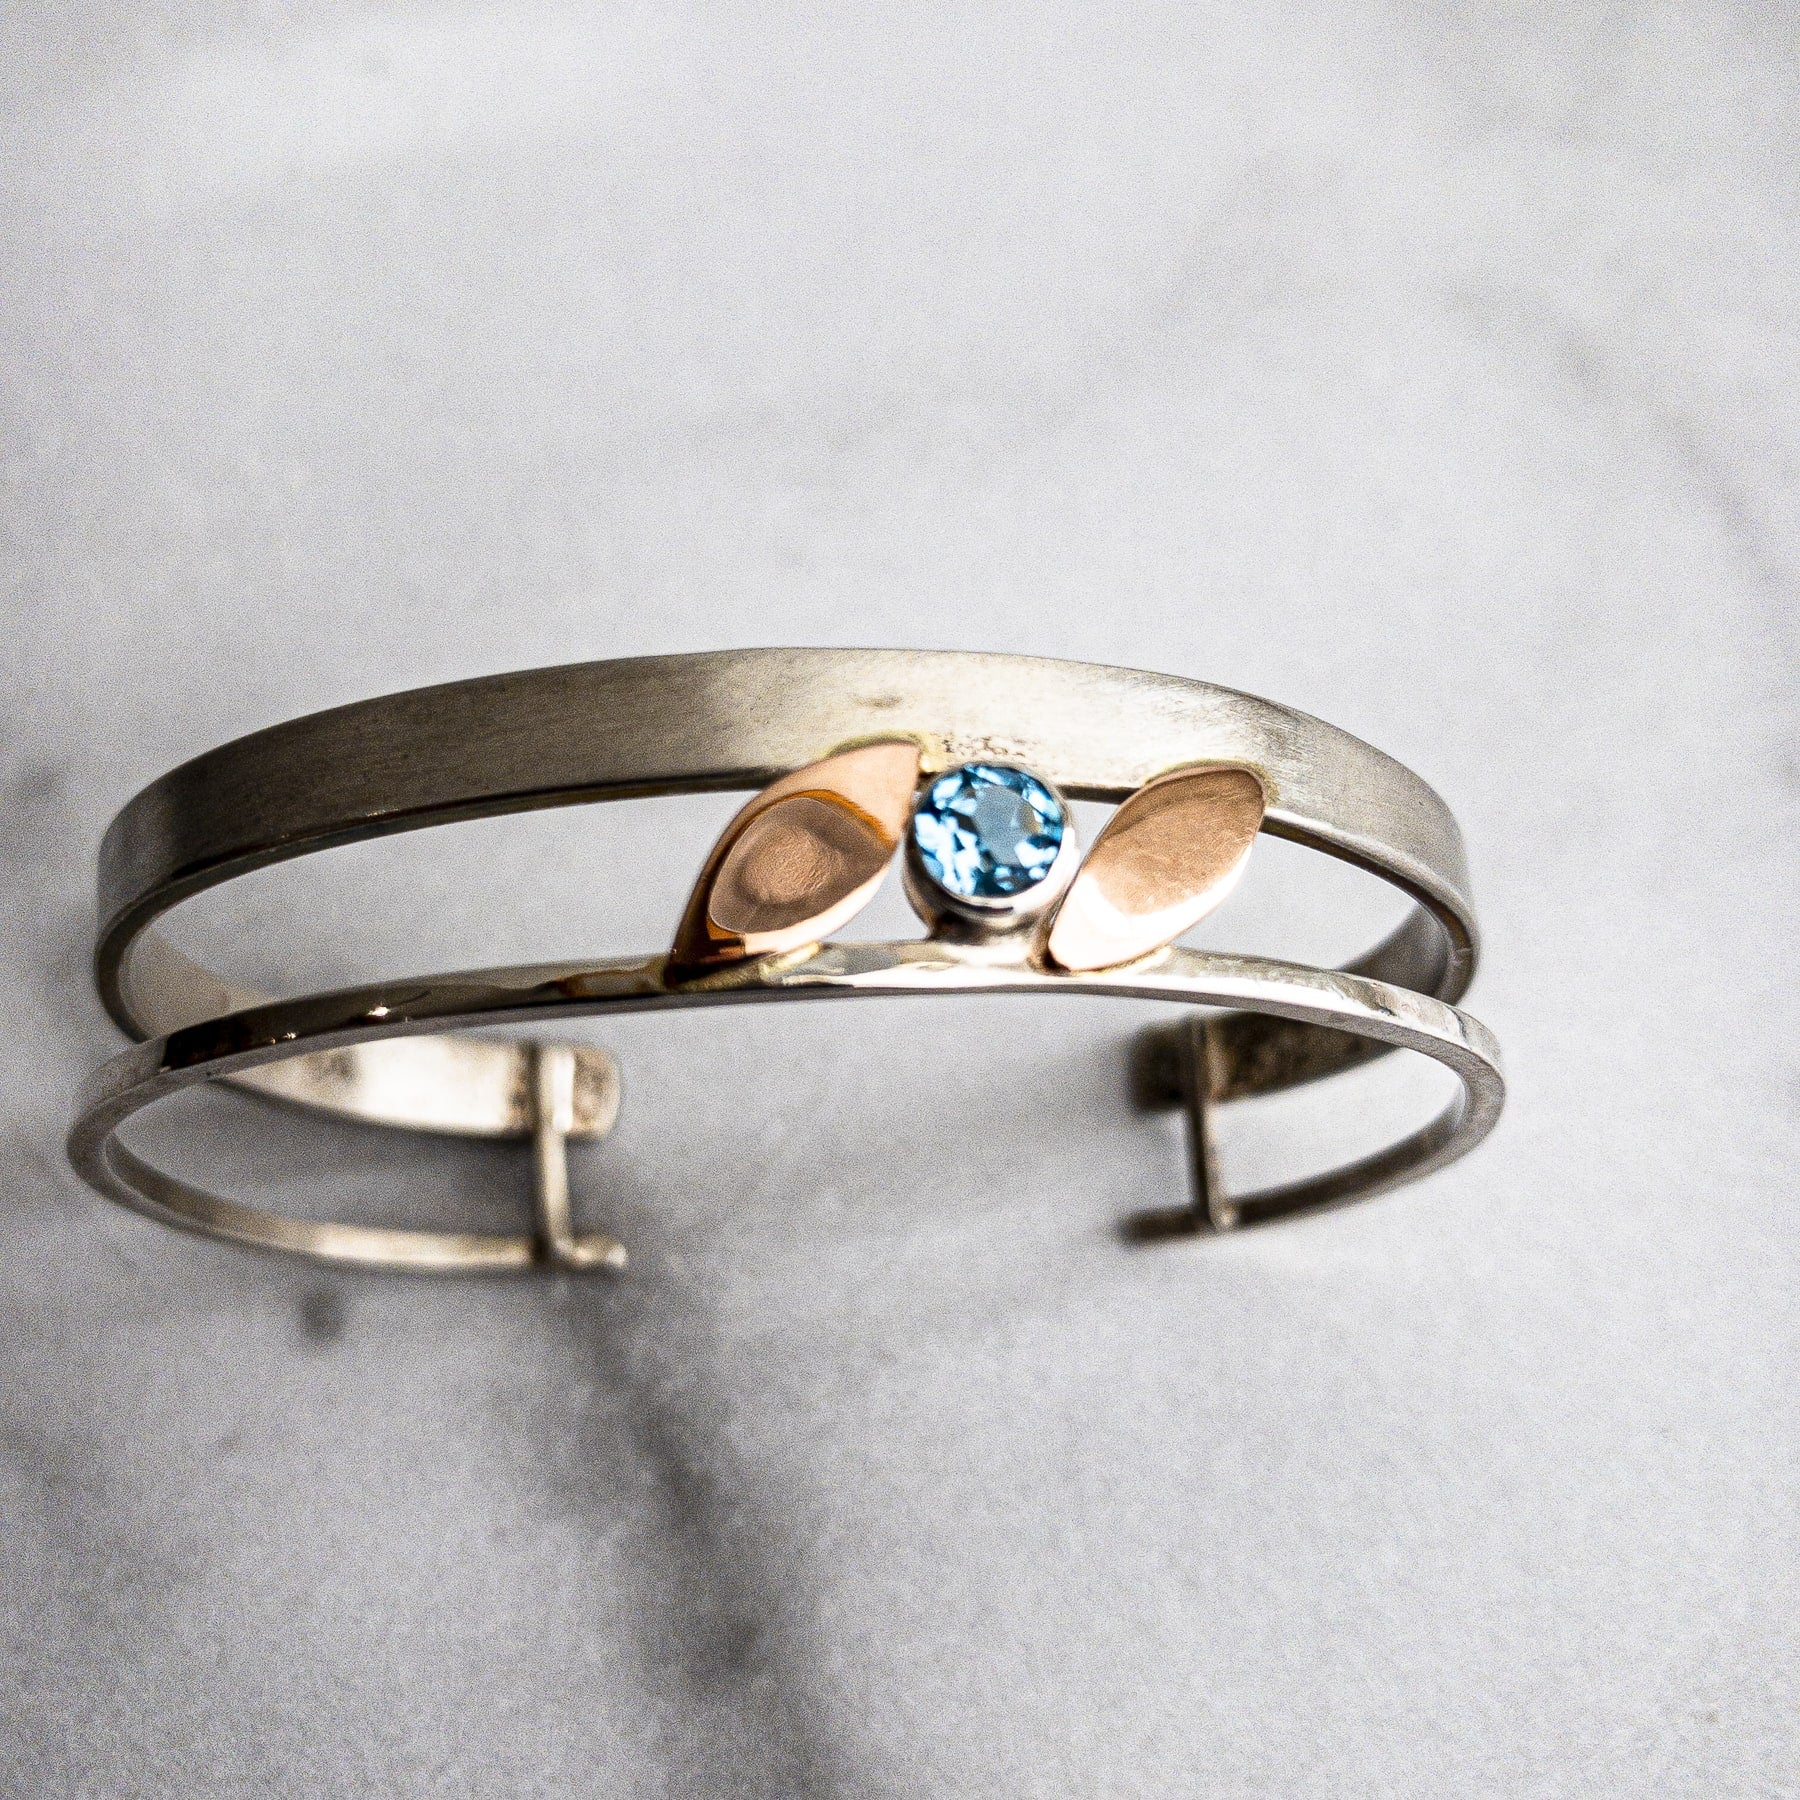 Small SS Cuff with Blue Topaz and Gold Leaf